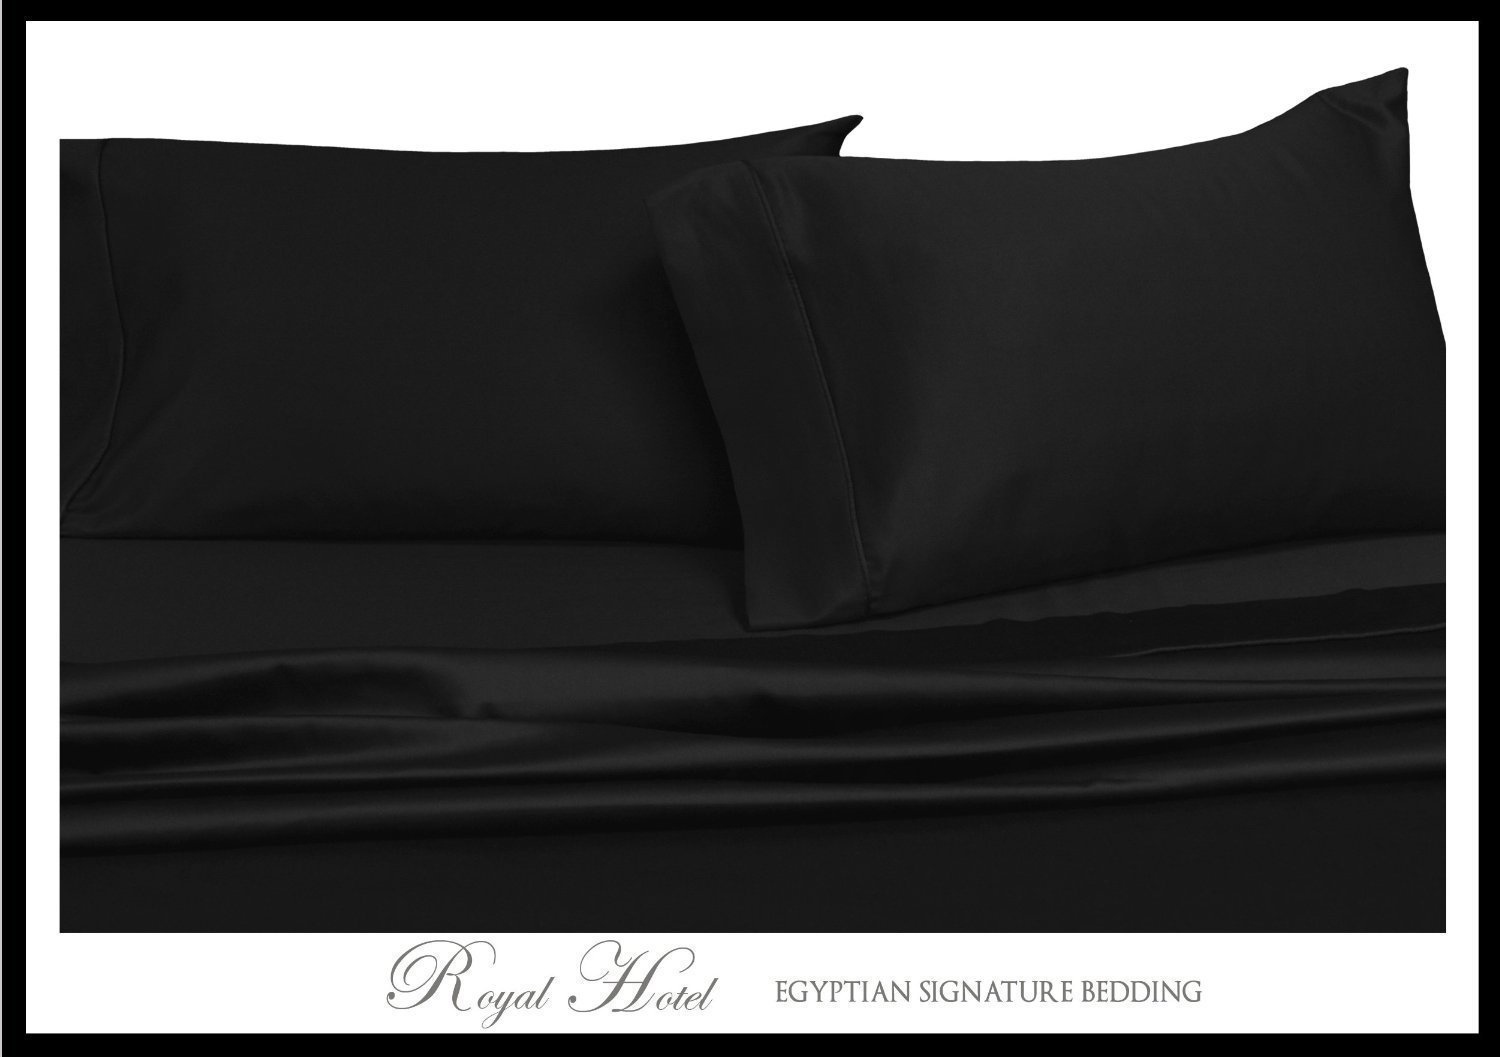 Amazing Black Bed Sheet Sets Ease Bedding With Style